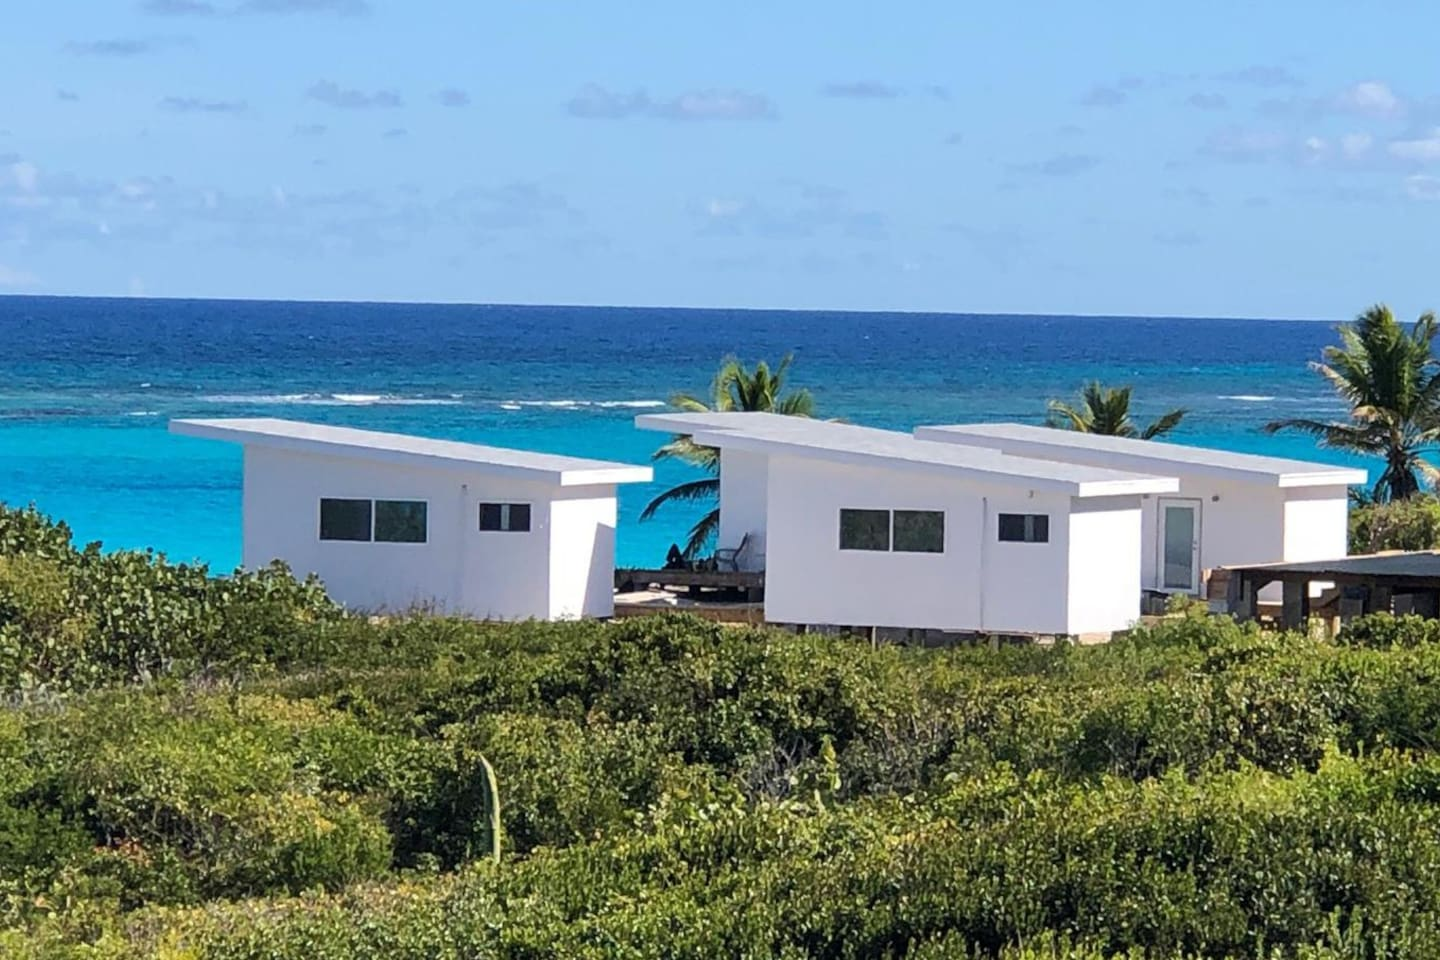 Stay in one of our modern, luxury oceanfront casitas!